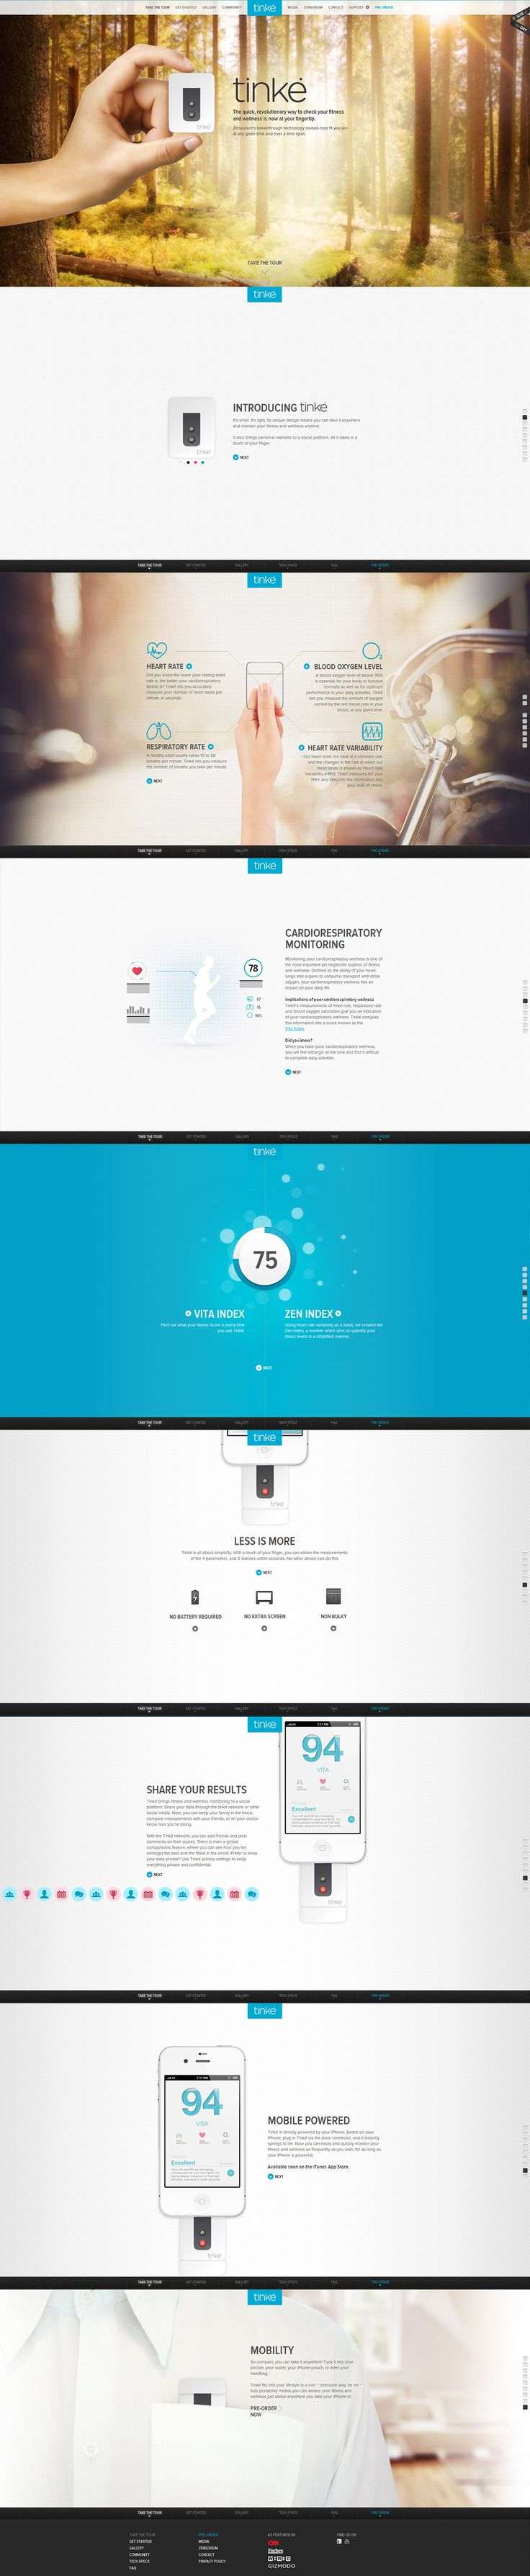 Tinke UI UX (user interface user experience) web design - development. Website design at its best! Brilliant layout #mobile #nike #digital #mobile #ui #uidesign #uxdesign #mobileappui #UIUX#webdesign #color #photography #typography #ResponsiveDesign #Web #UI #UX #WordPress #Resposive Design #Website #Graphics